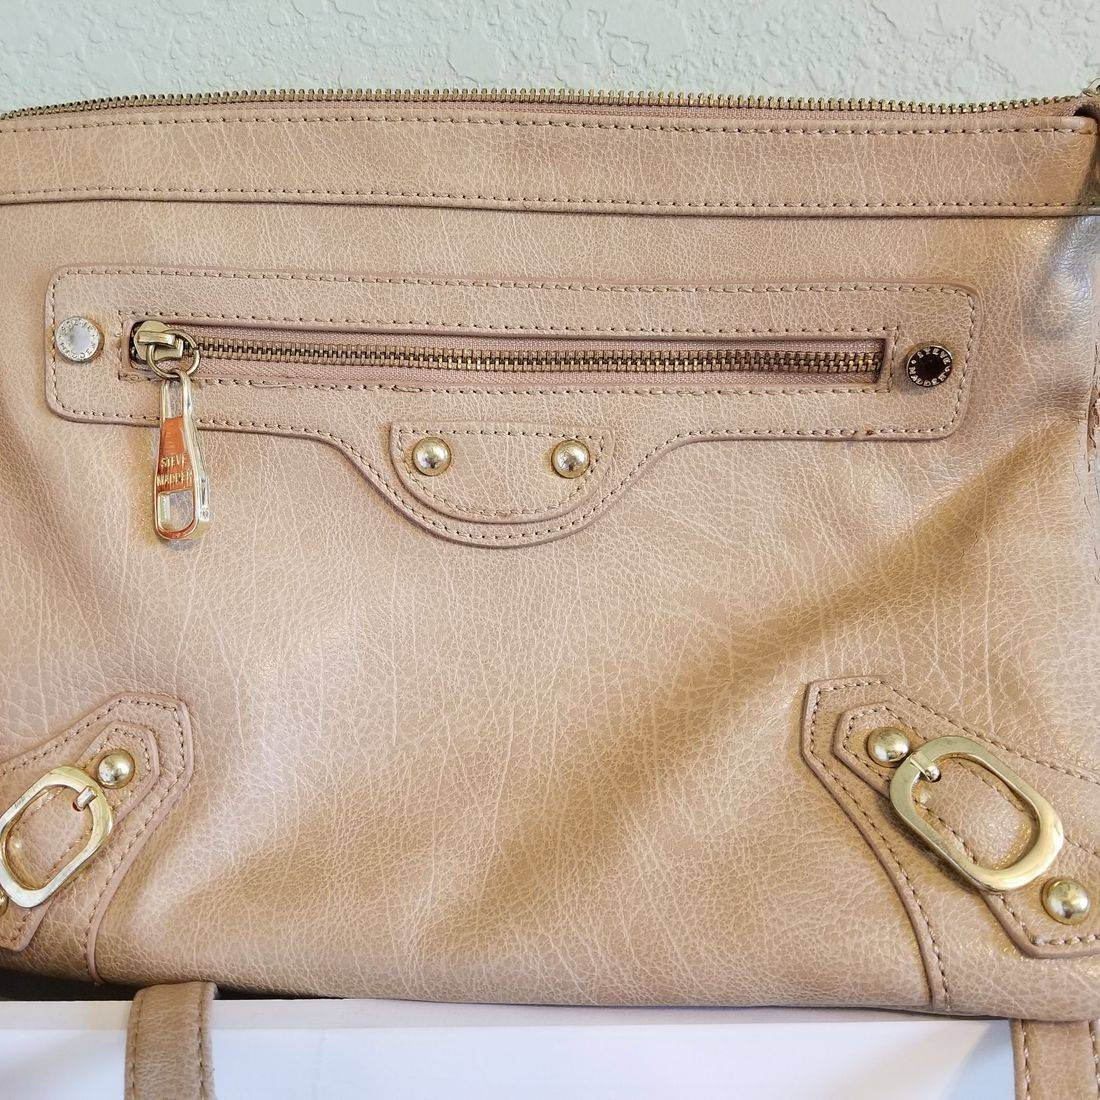 Steve Madden Tan cross body